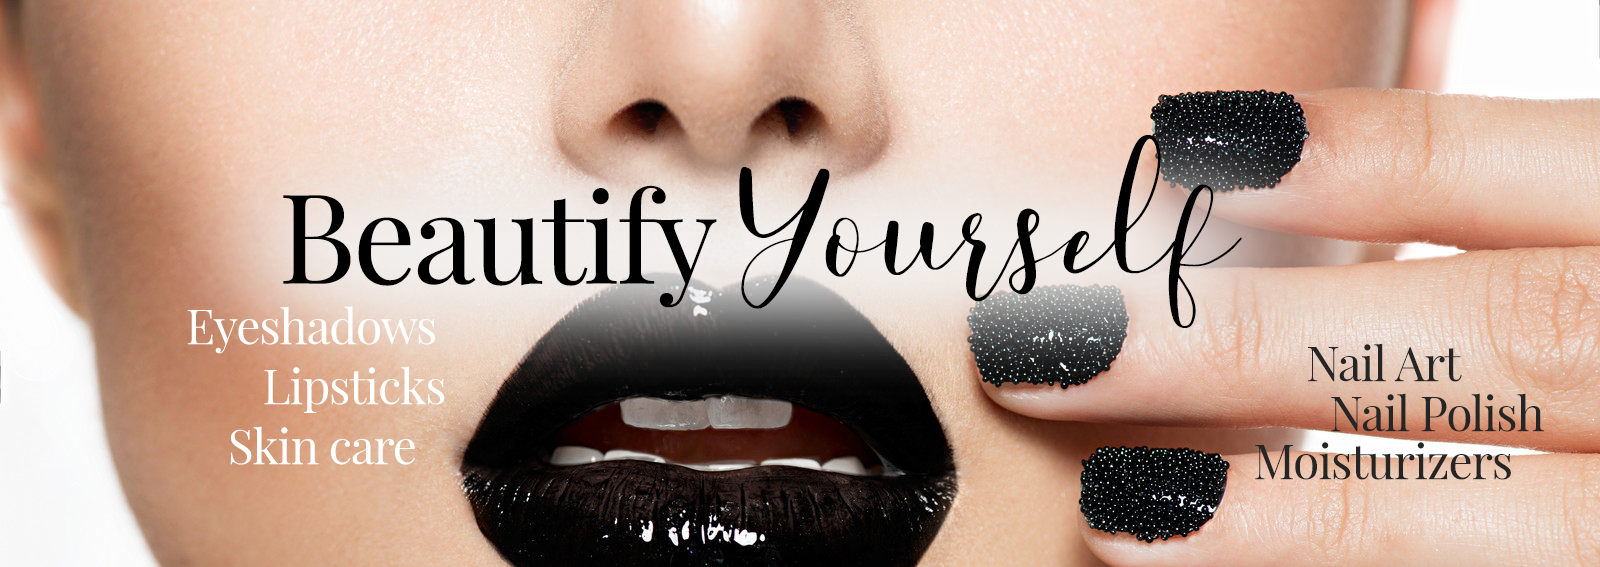 Beautify Yourself!